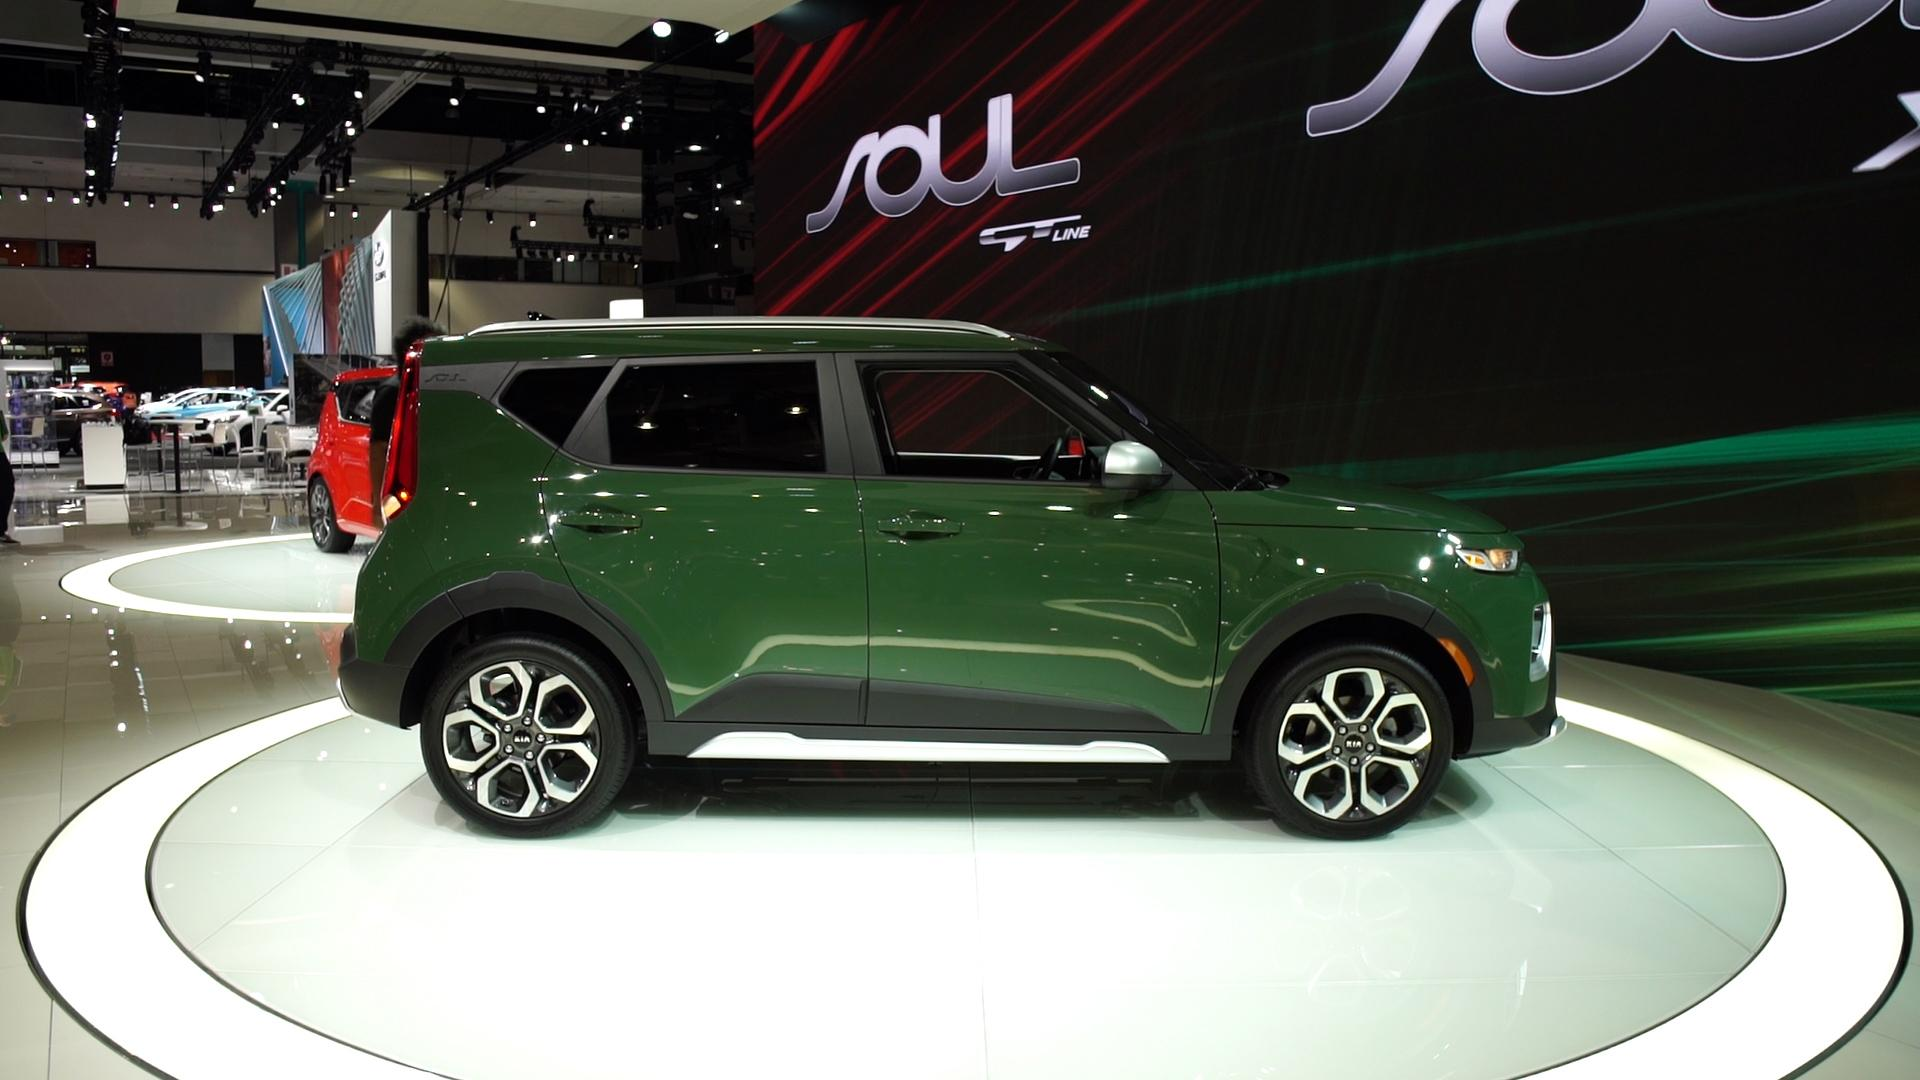 75 New 2020 All Kia Soul Awd Concept and Review